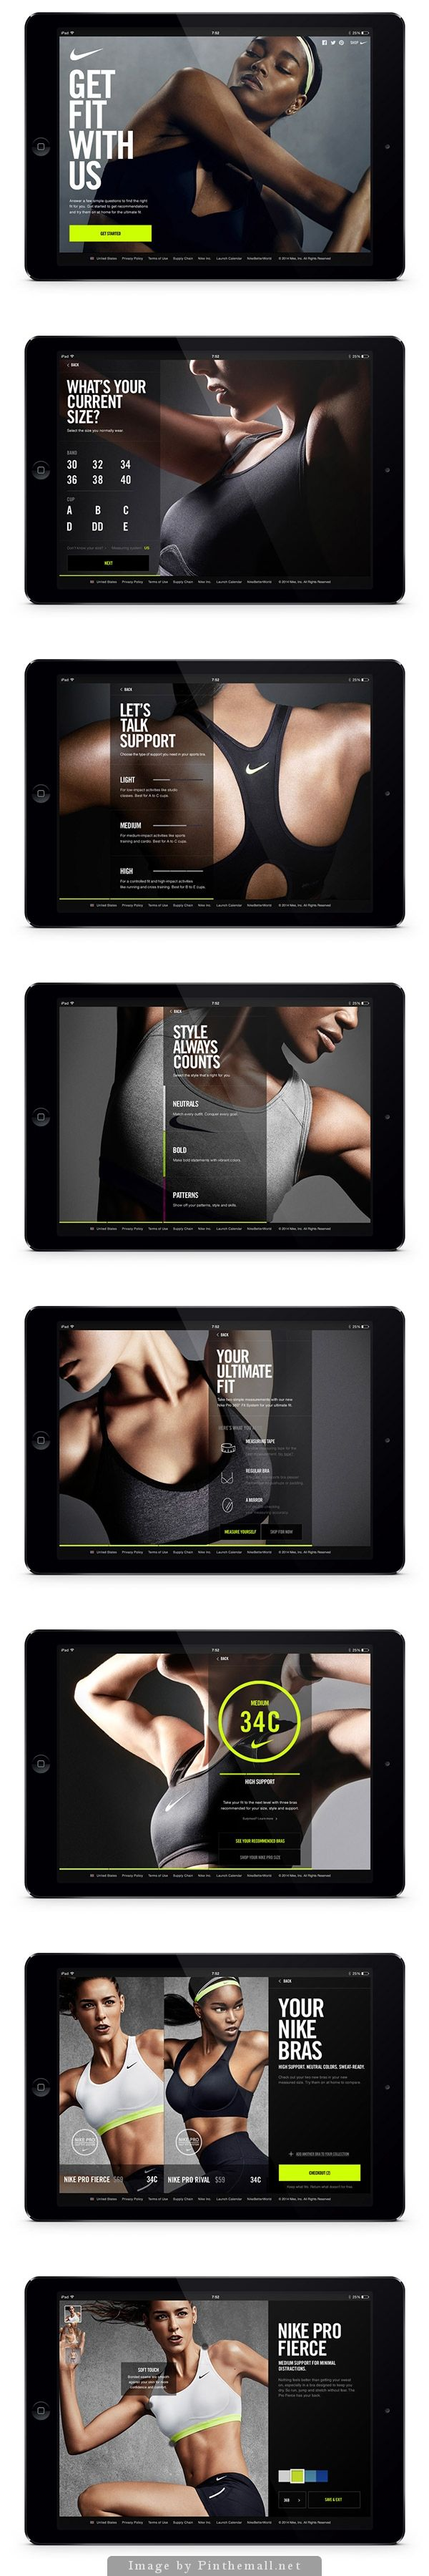 Progress bar moves the whole form. Plus other interesting design patterns #nike #mobile #digital